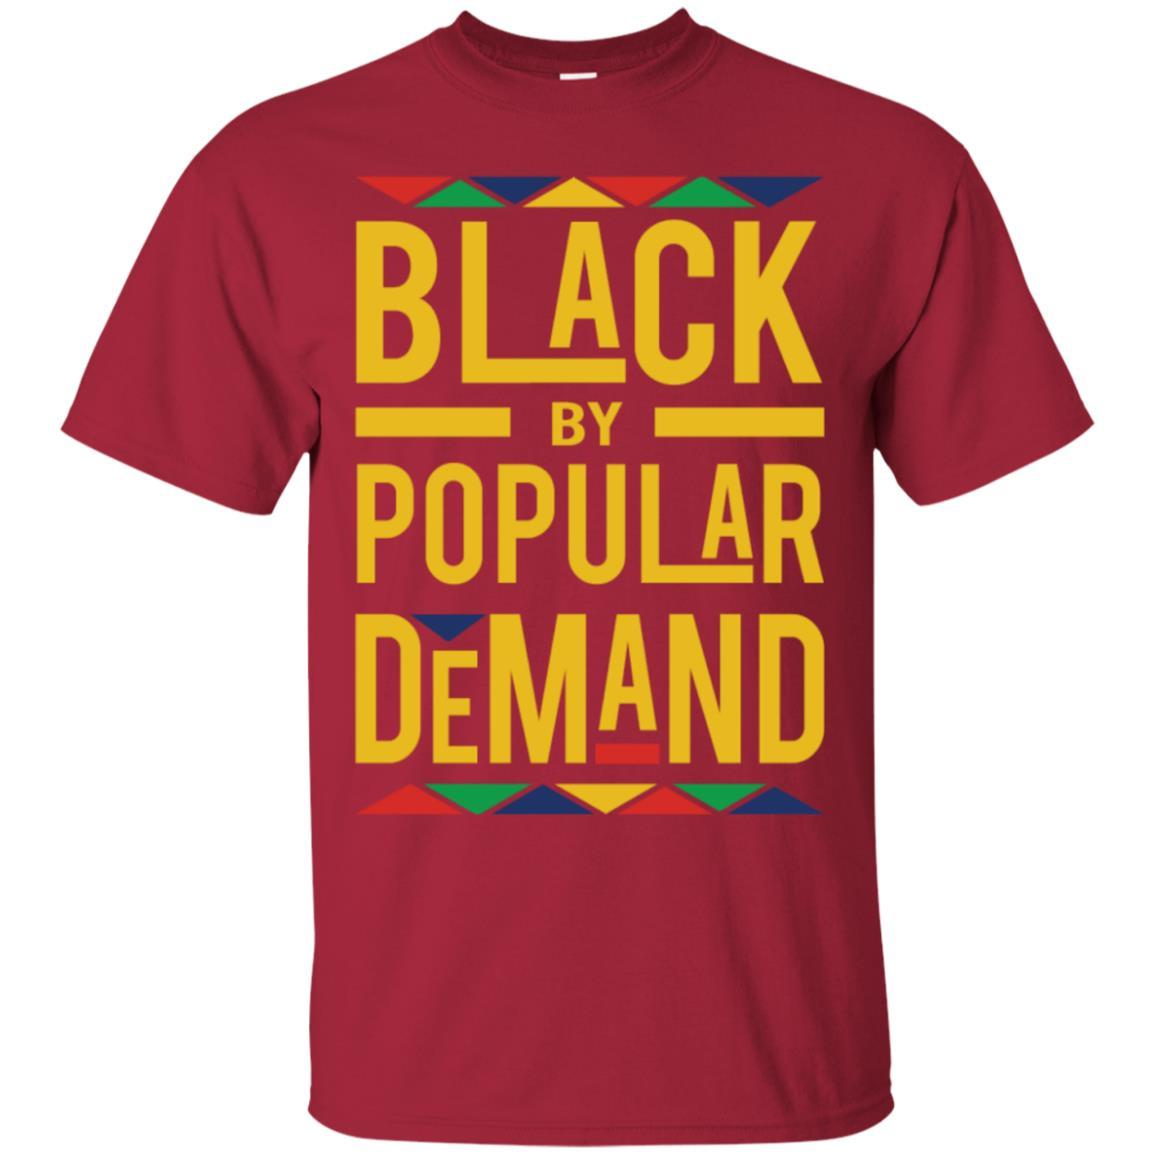 Black by Popular Demand T-Shirt Style / Color / Size